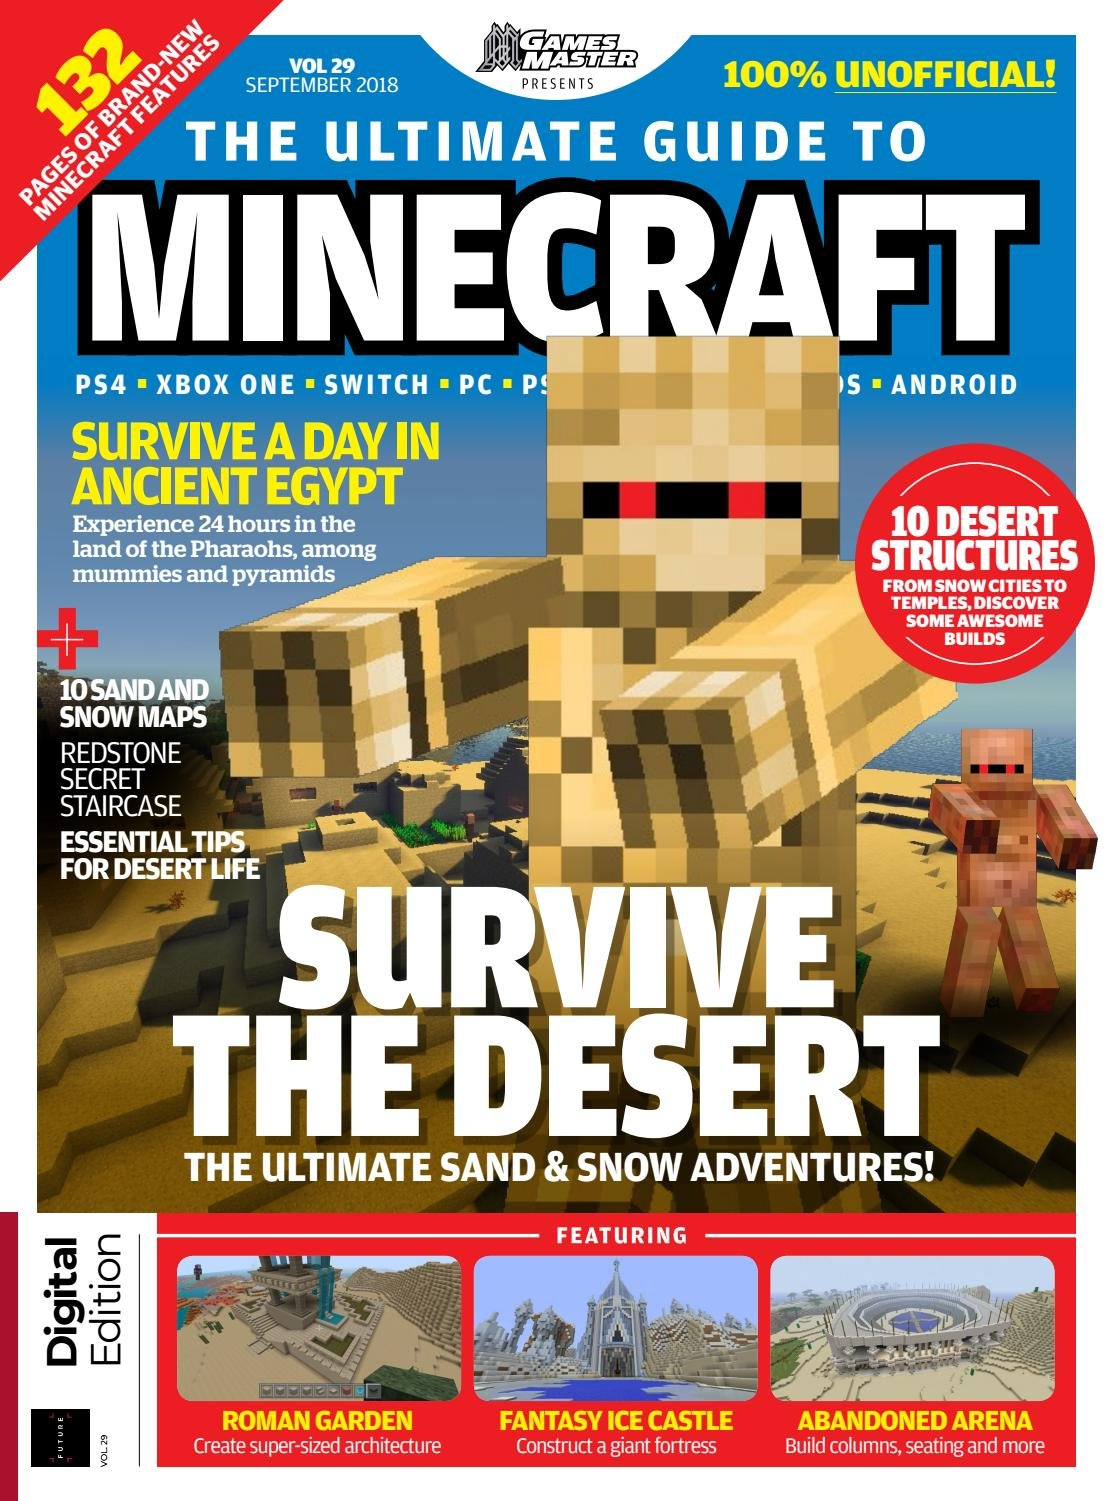 GamesMaster Presents: The Ultimate Guide to Minecraft Vol.29 (September 2018)